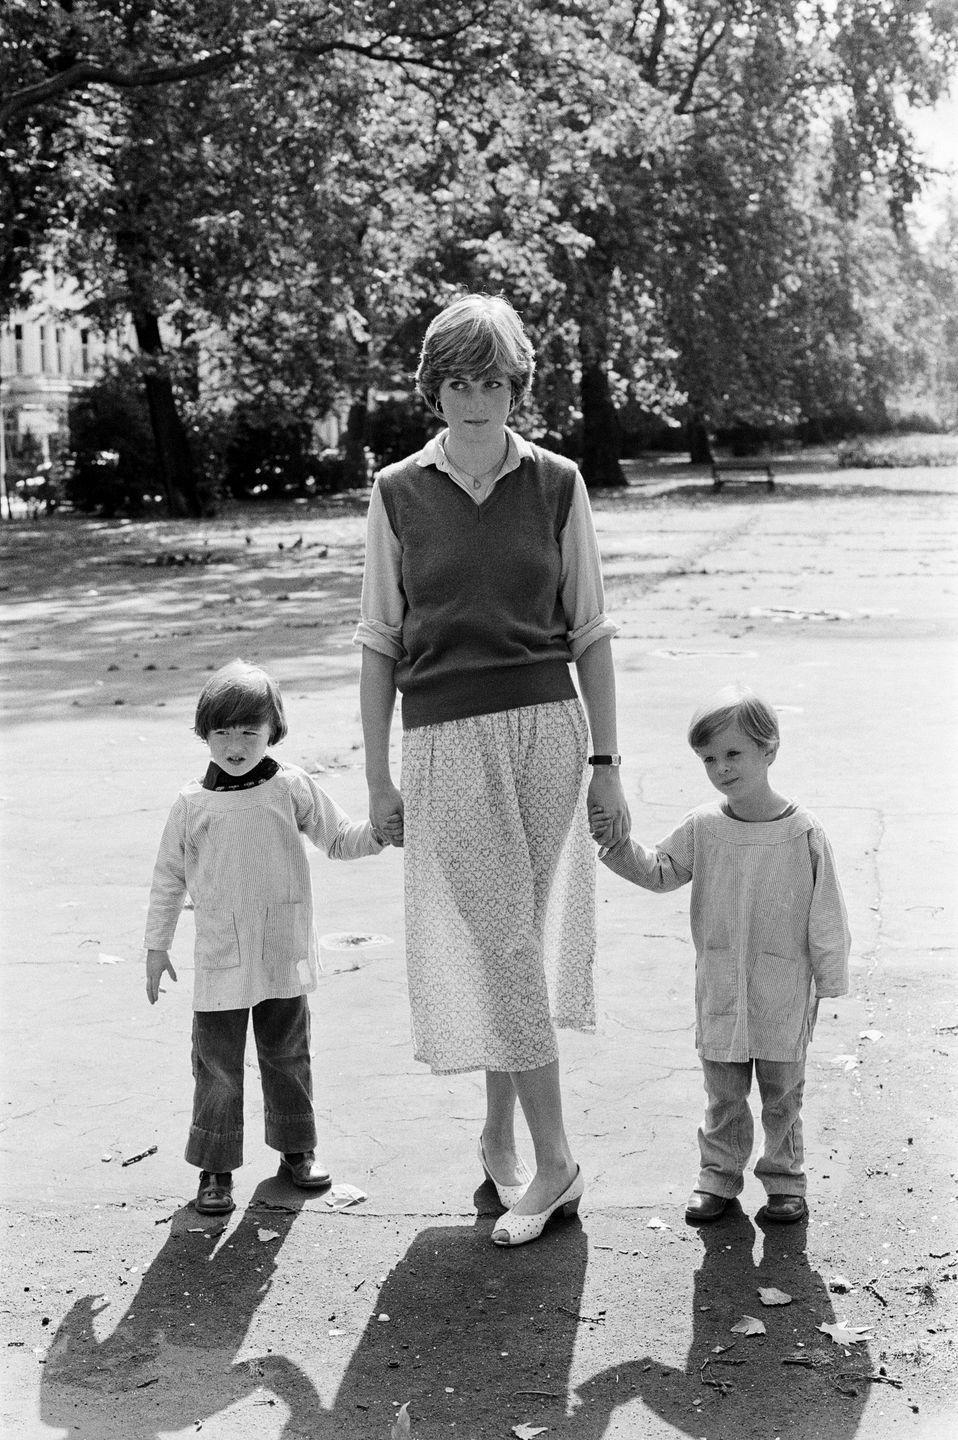 """<p>The then-girlfriend of Prince Charles, Lady Diana Spencer wore a modest mid-calf skirt when she was photographed at the preschool she taught at in 1980. Unfortunately, the sun made it appear translucent. Critics were quick to point out that it was inappropriate to show the outline of her legs and the <a href=""""https://www.today.com/news/princess-diana-s-iconic-skirt-moment-photographer-arthur-edwards-shares-t111013"""" rel=""""nofollow noopener"""" target=""""_blank"""" data-ylk=""""slk:photograph has now become iconic"""" class=""""link rapid-noclick-resp"""">photograph has now become iconic</a>. </p>"""